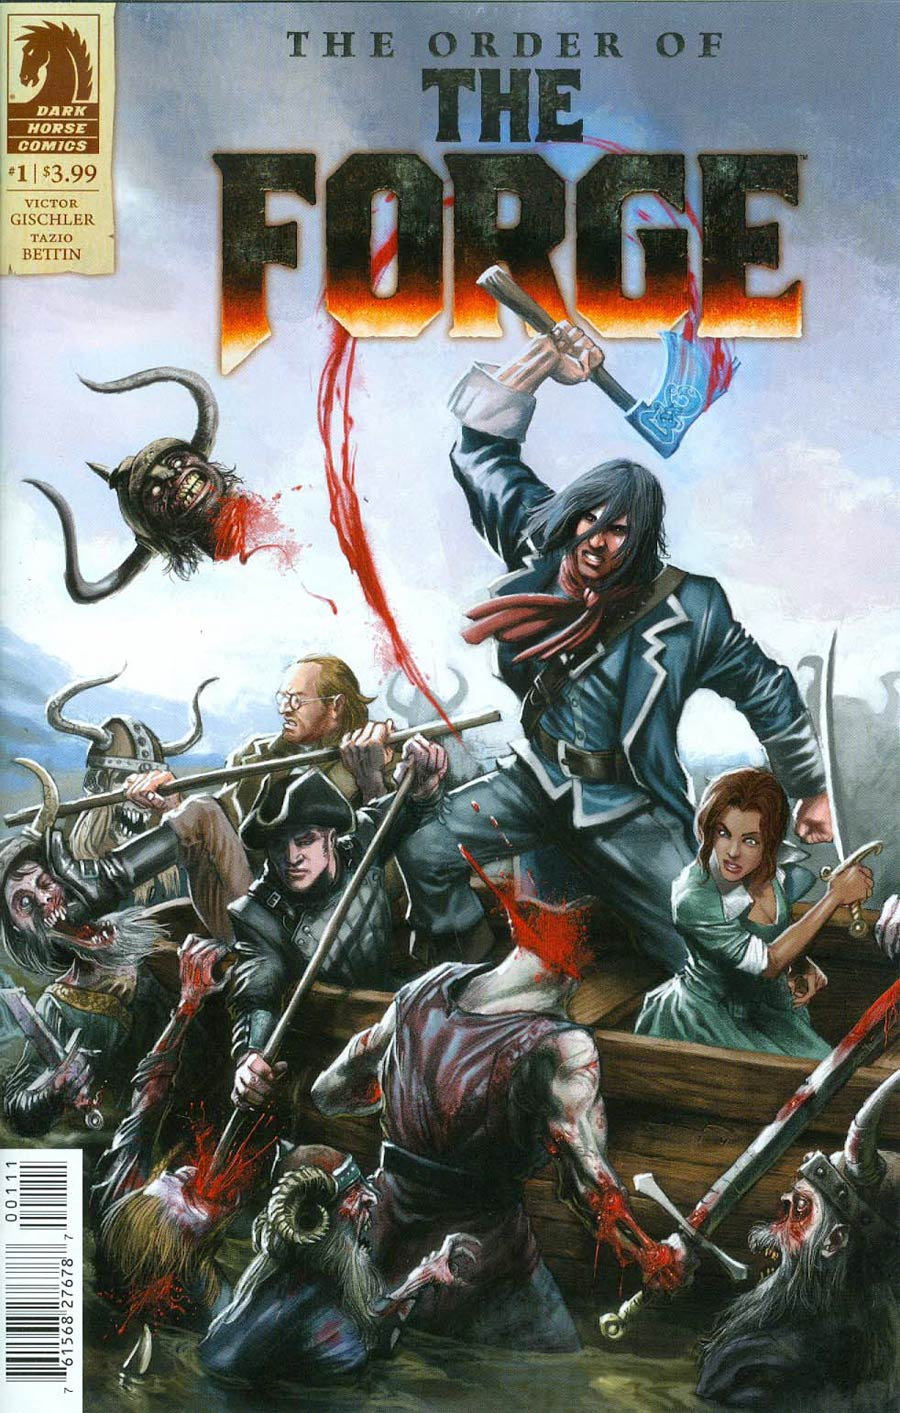 Order Of The Forge #1